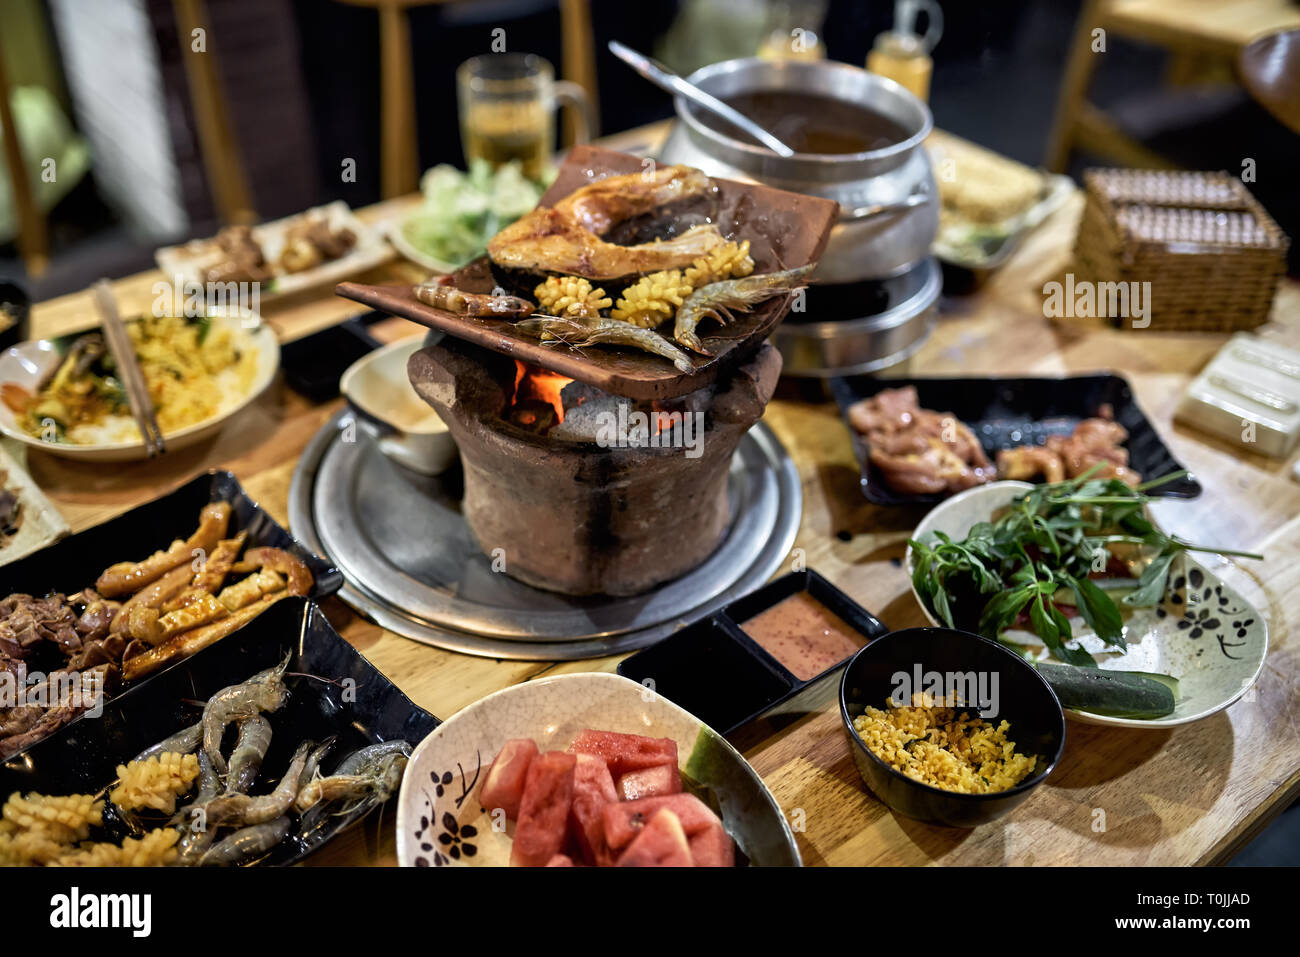 Traditional vietnamese hot spot restaurant with varied food - Stock Image